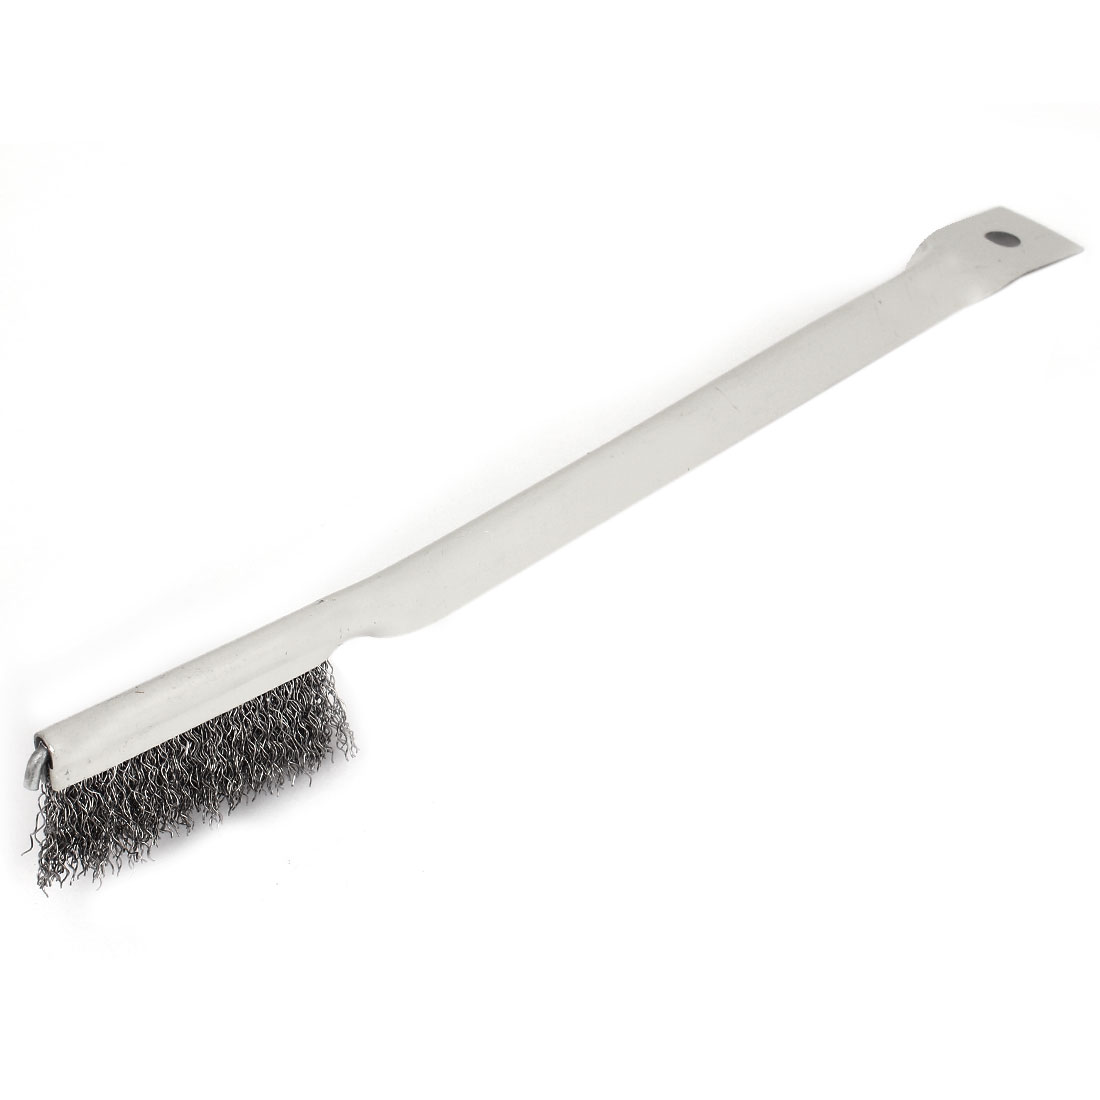 26cm Length Handy Tool Metal Handle Steel Wire Cleaning Brush Silver Tone